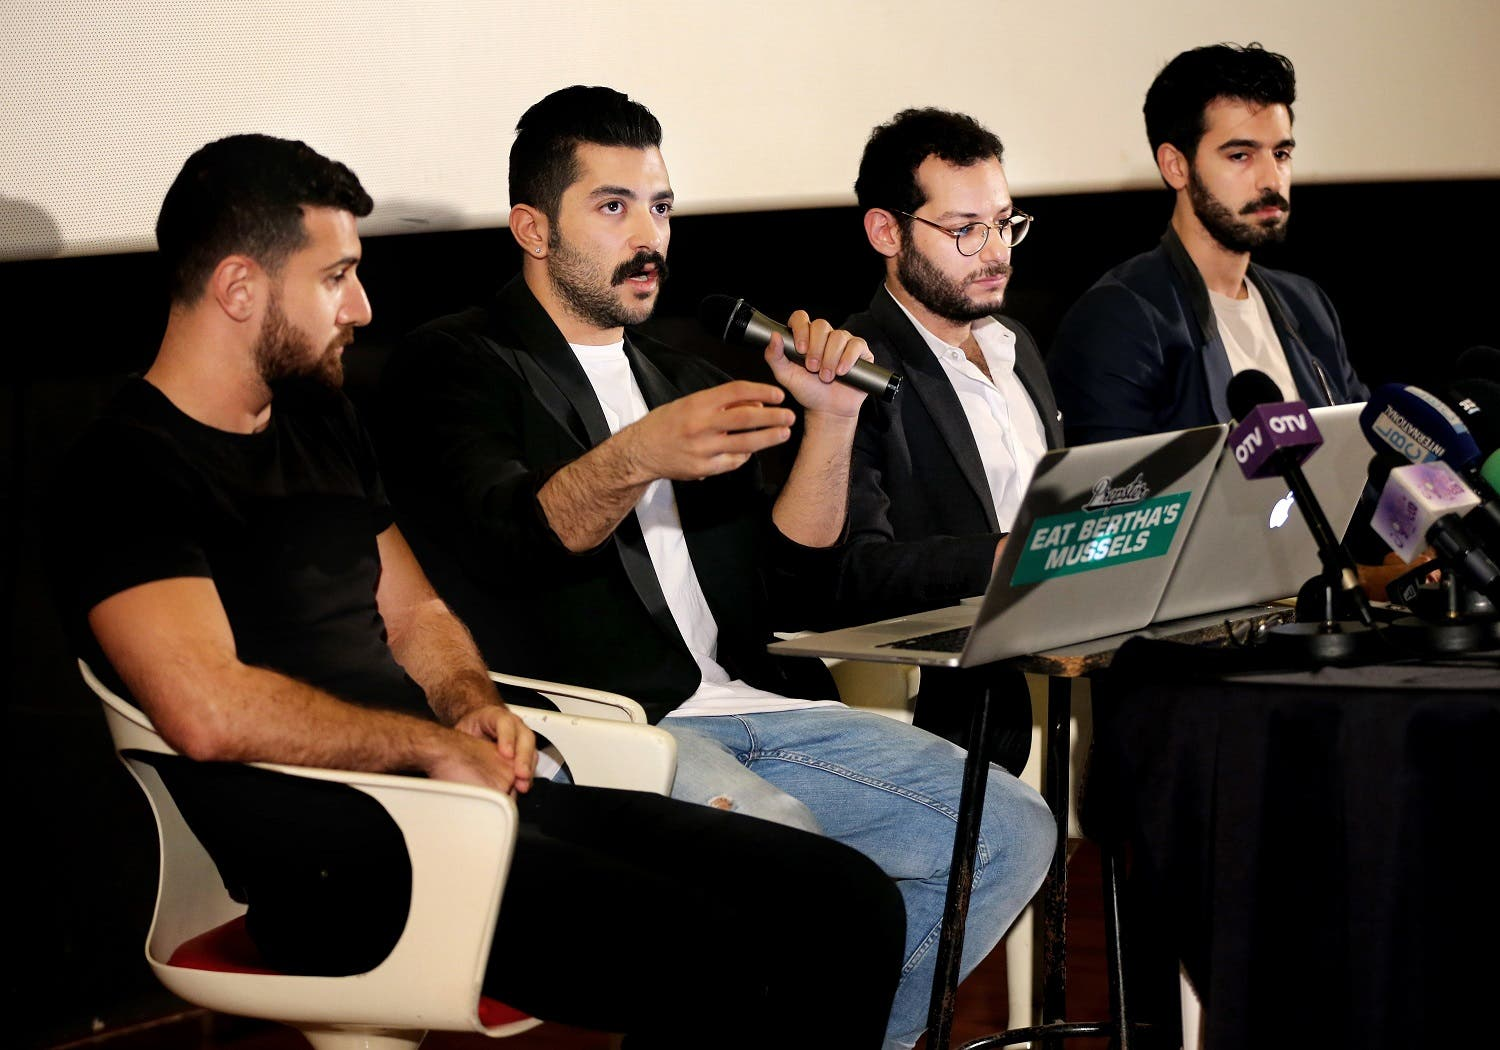 Mashrou' Leila's songs often take on controversial subjects such as corruption, censorship, state violence and sexual freedom. (AP)